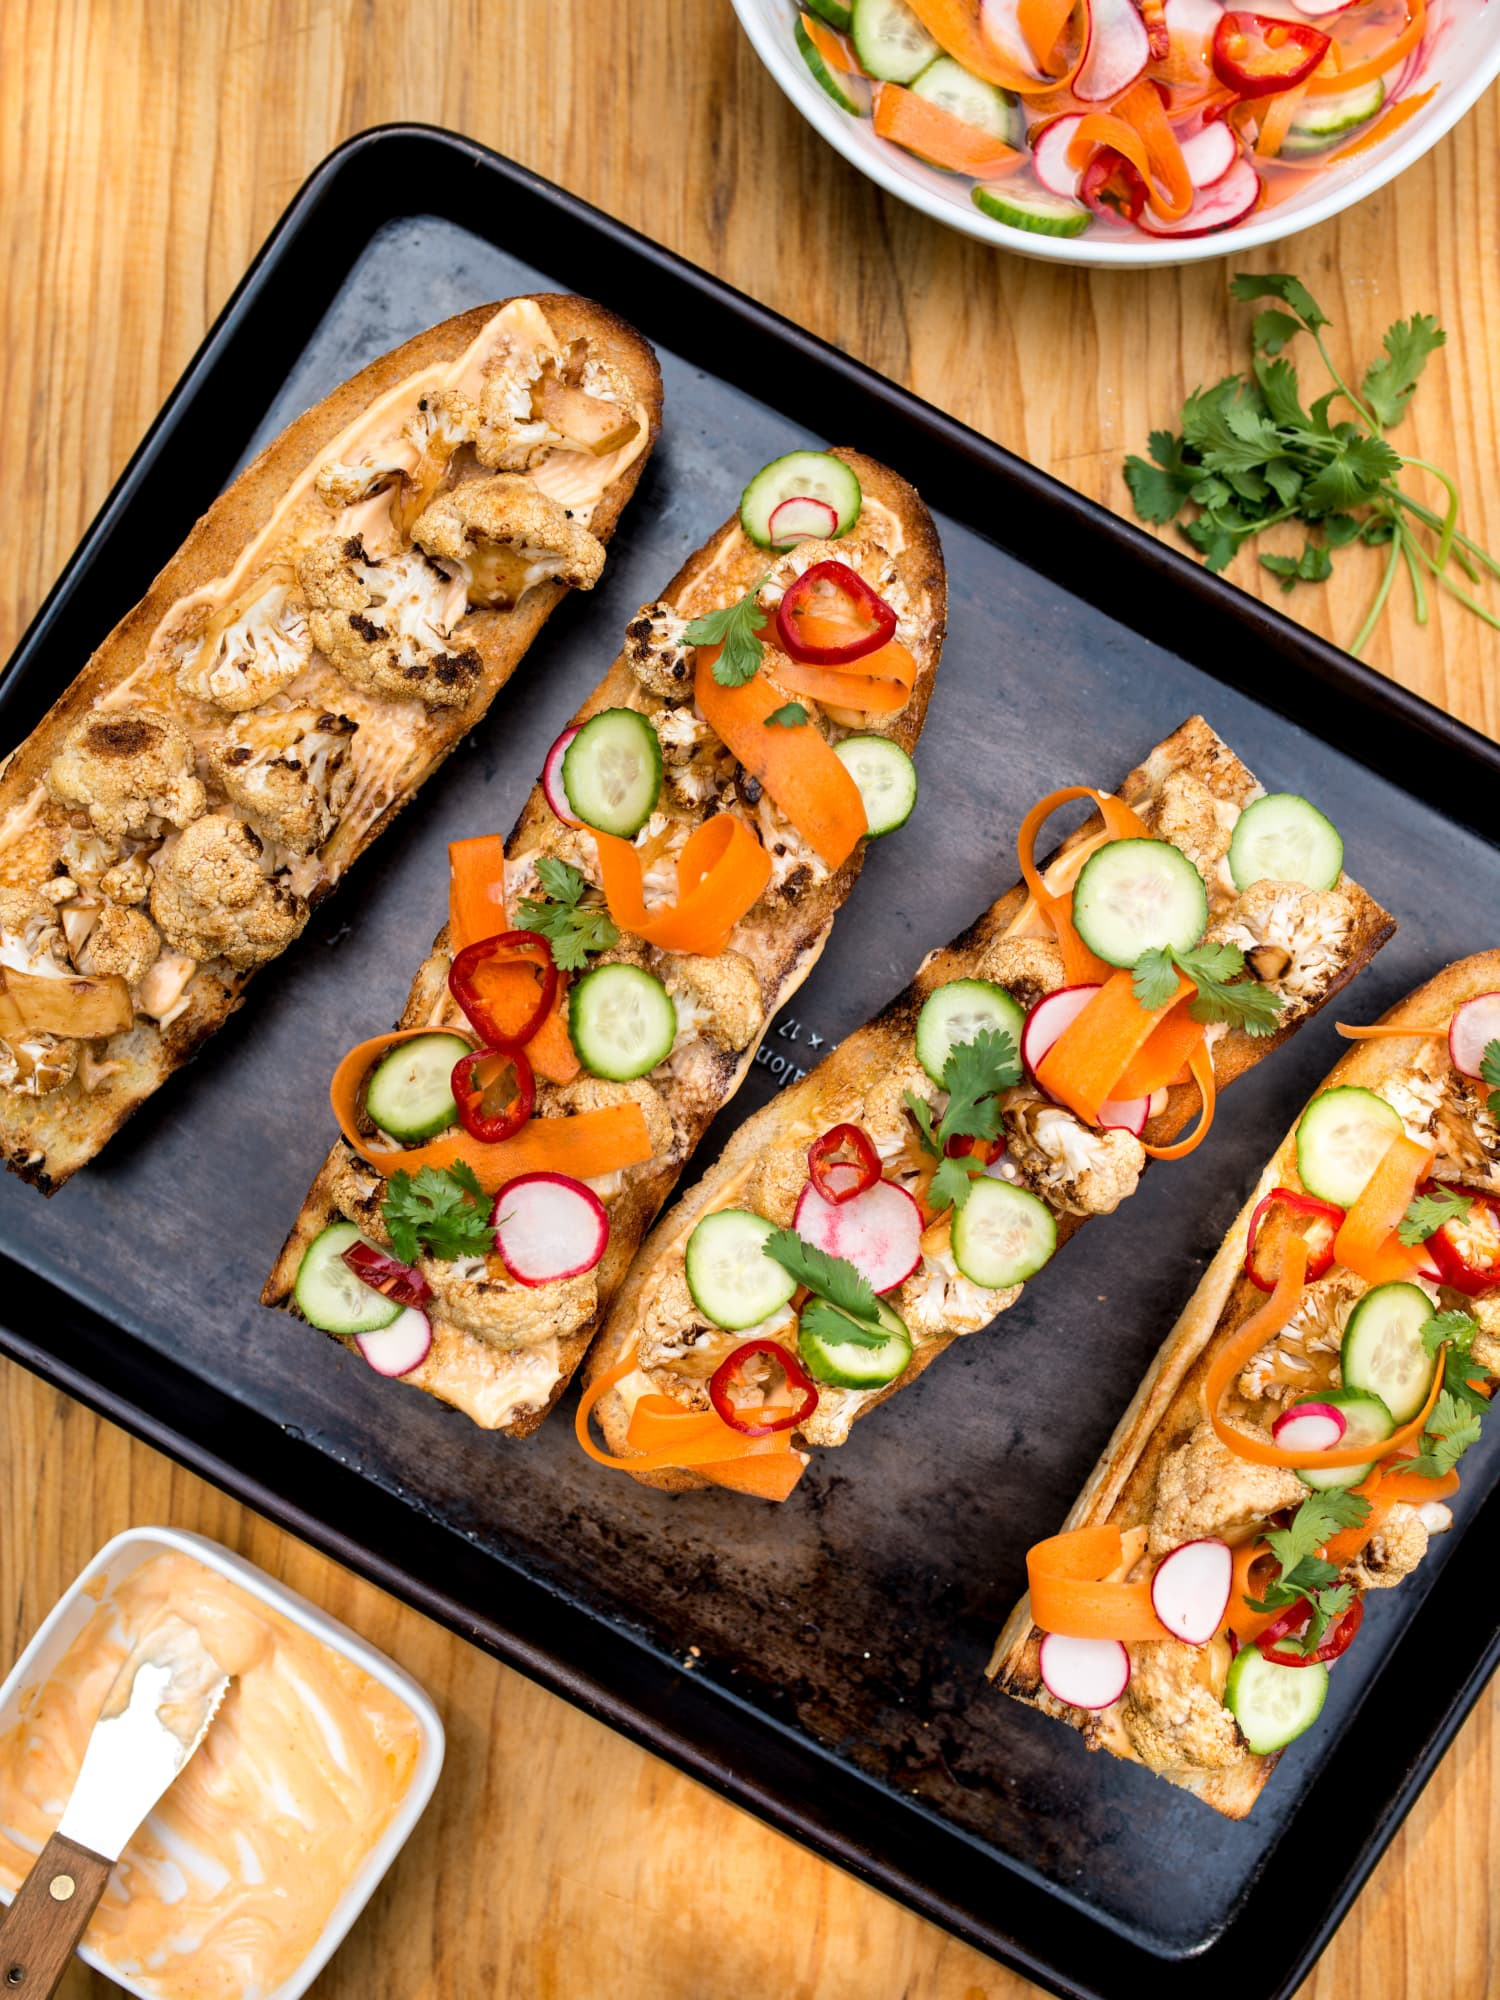 This Easy (Ridiculously Good) Cauliflower Bánh Mì Starts on the Grill